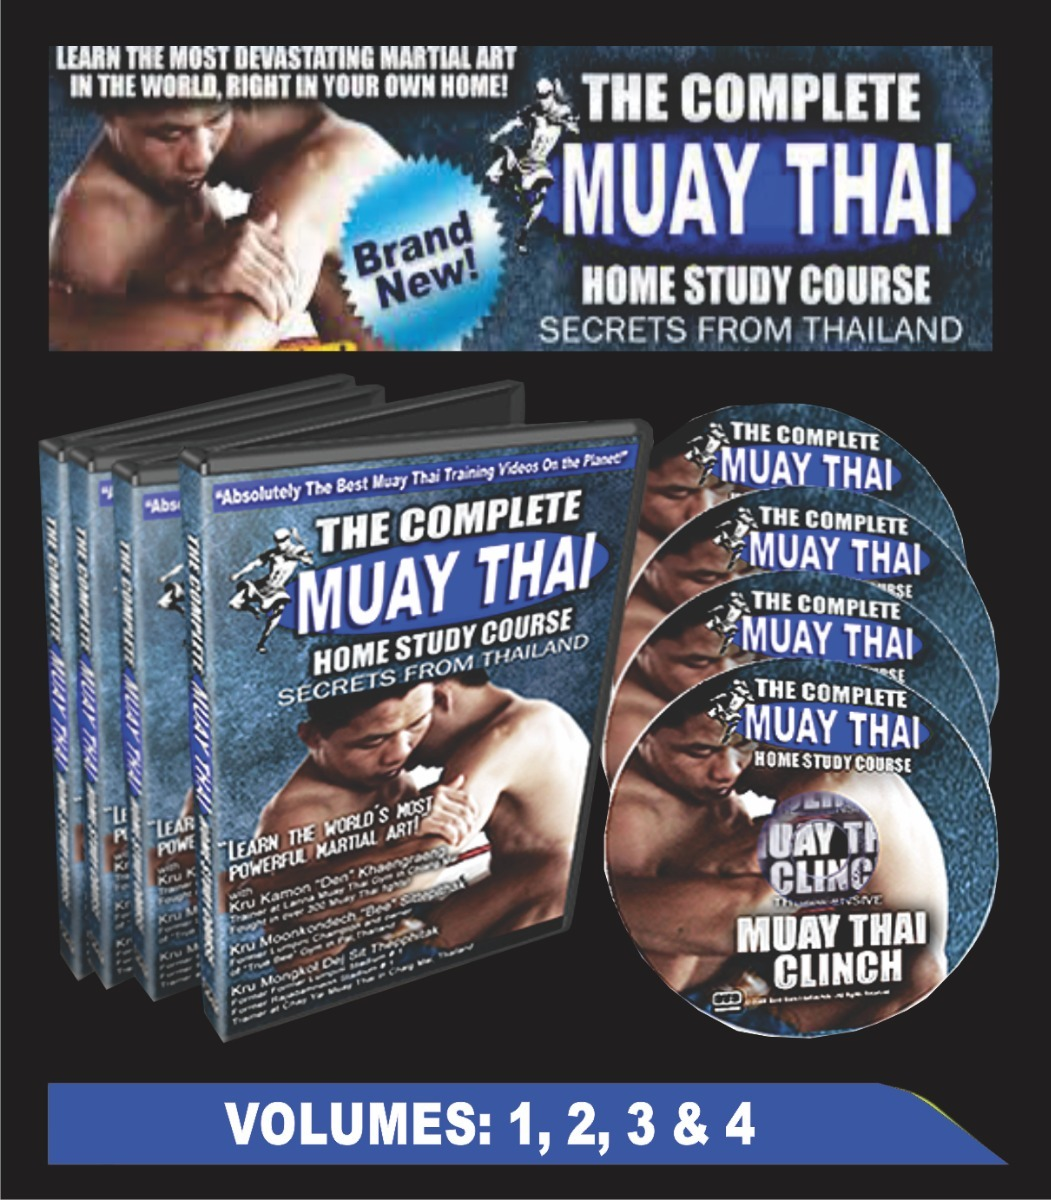 Learn These Muay Thai Training Videos {Swypeout}